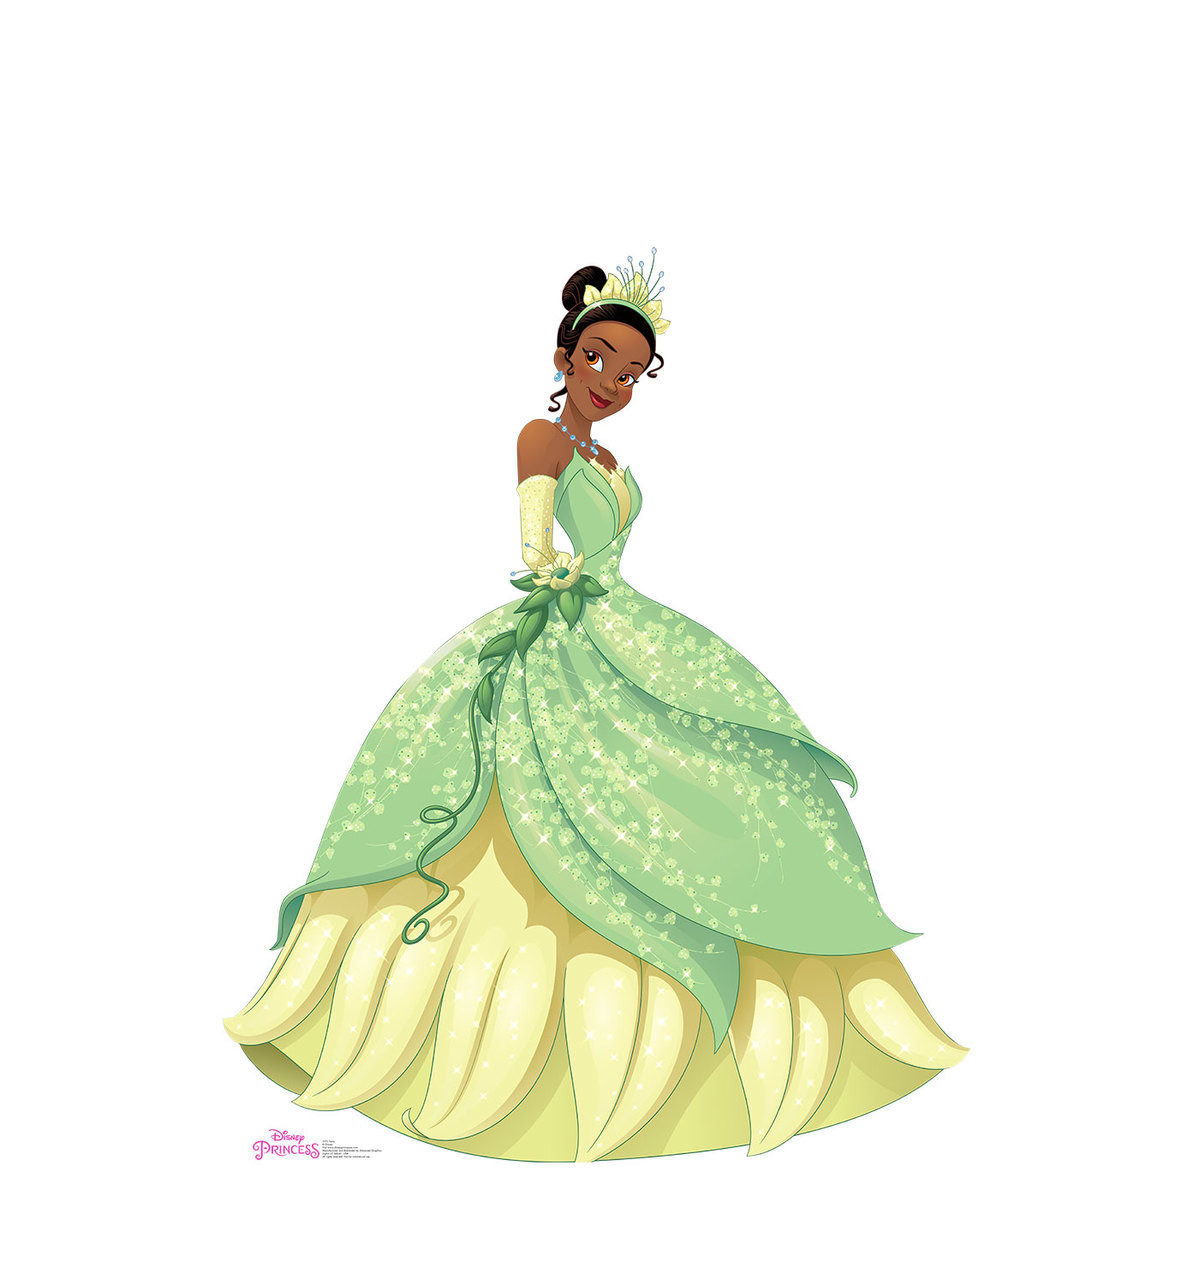 Tiana - Friendship Adventures